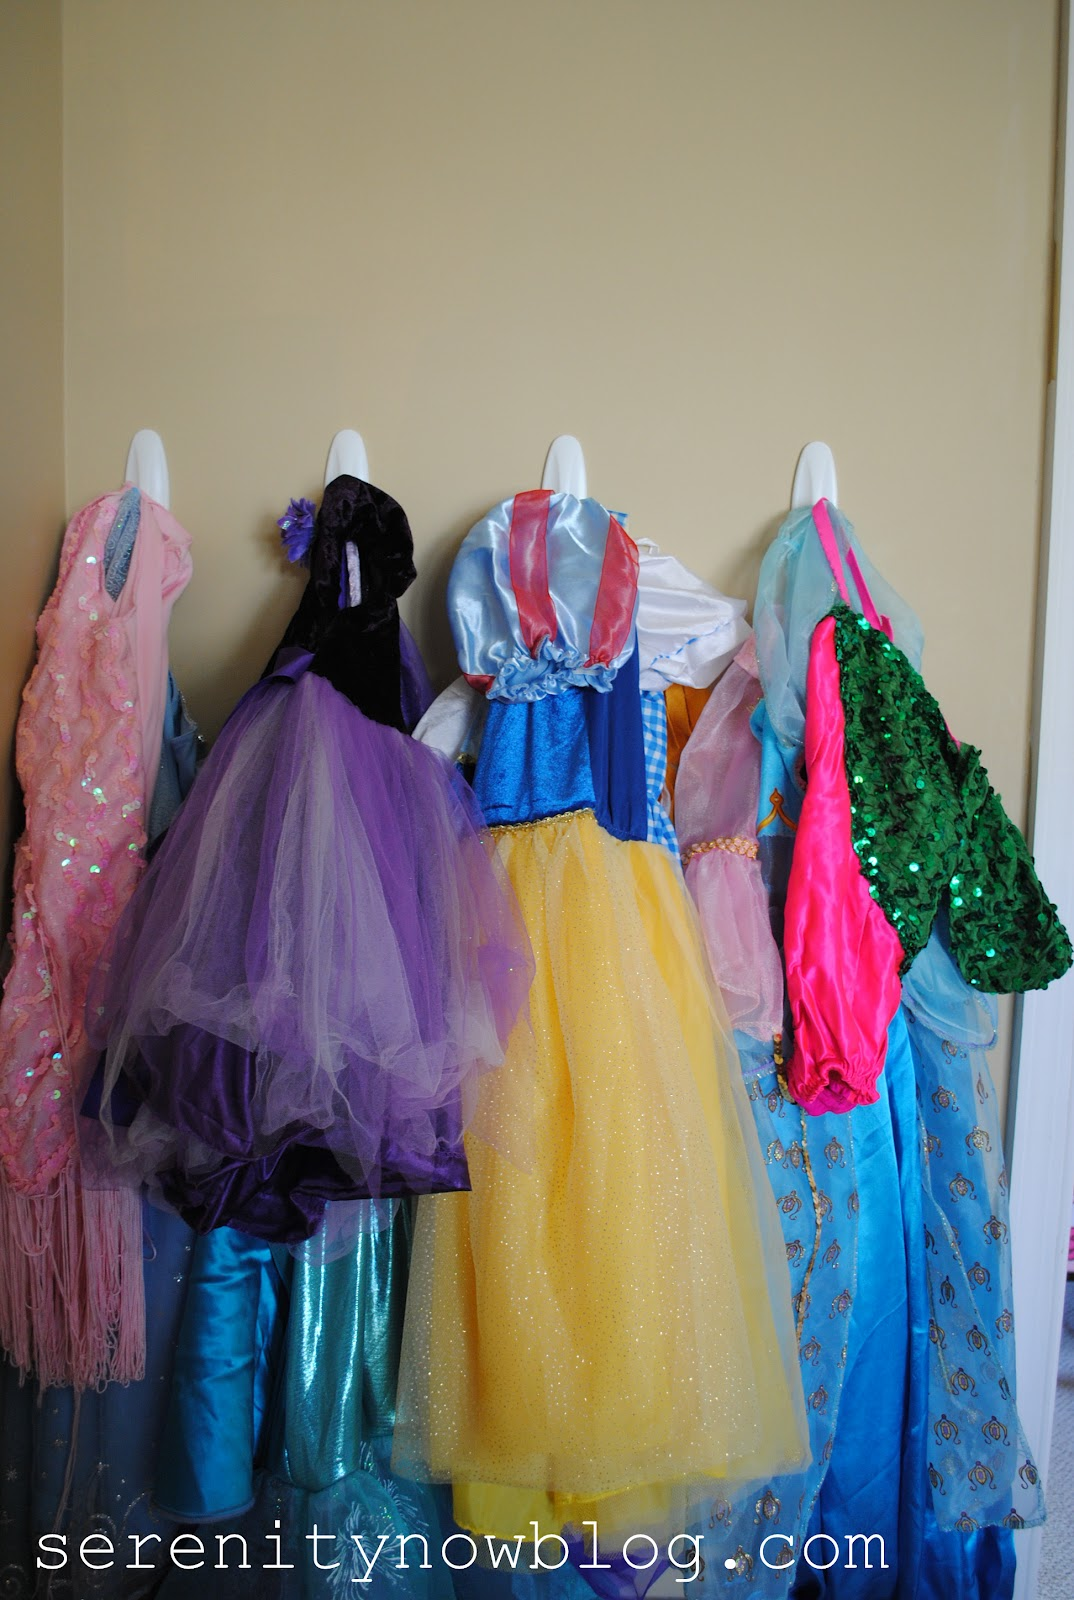 Storing dress up clothes